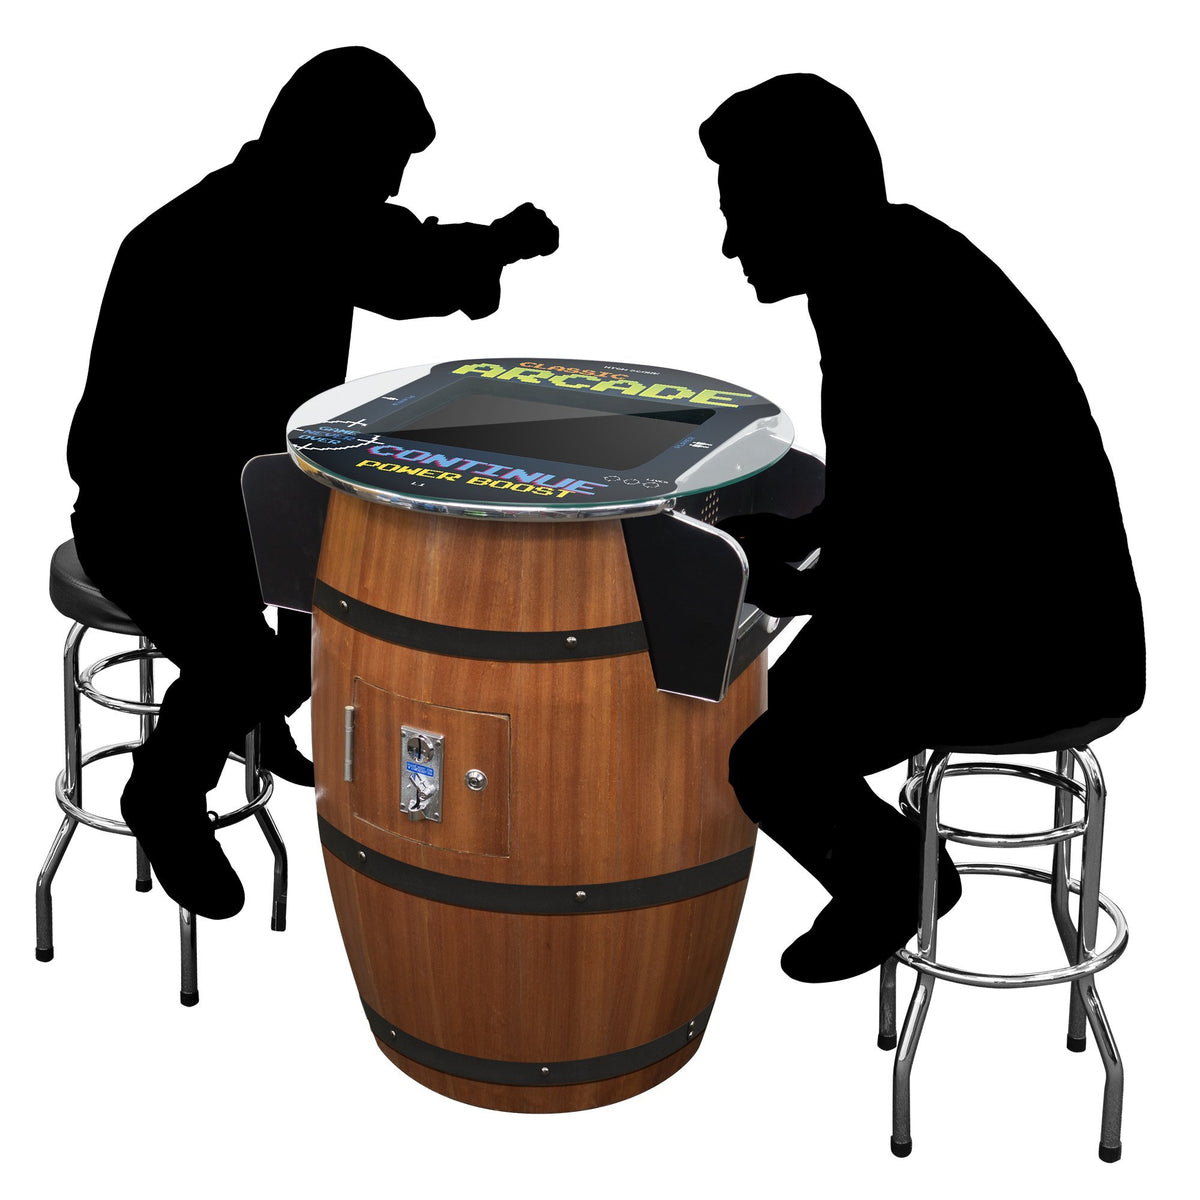 "2 Player Full Size Wine Barrel Arcade | 60-412 Games | 19"" LCD Monitor 